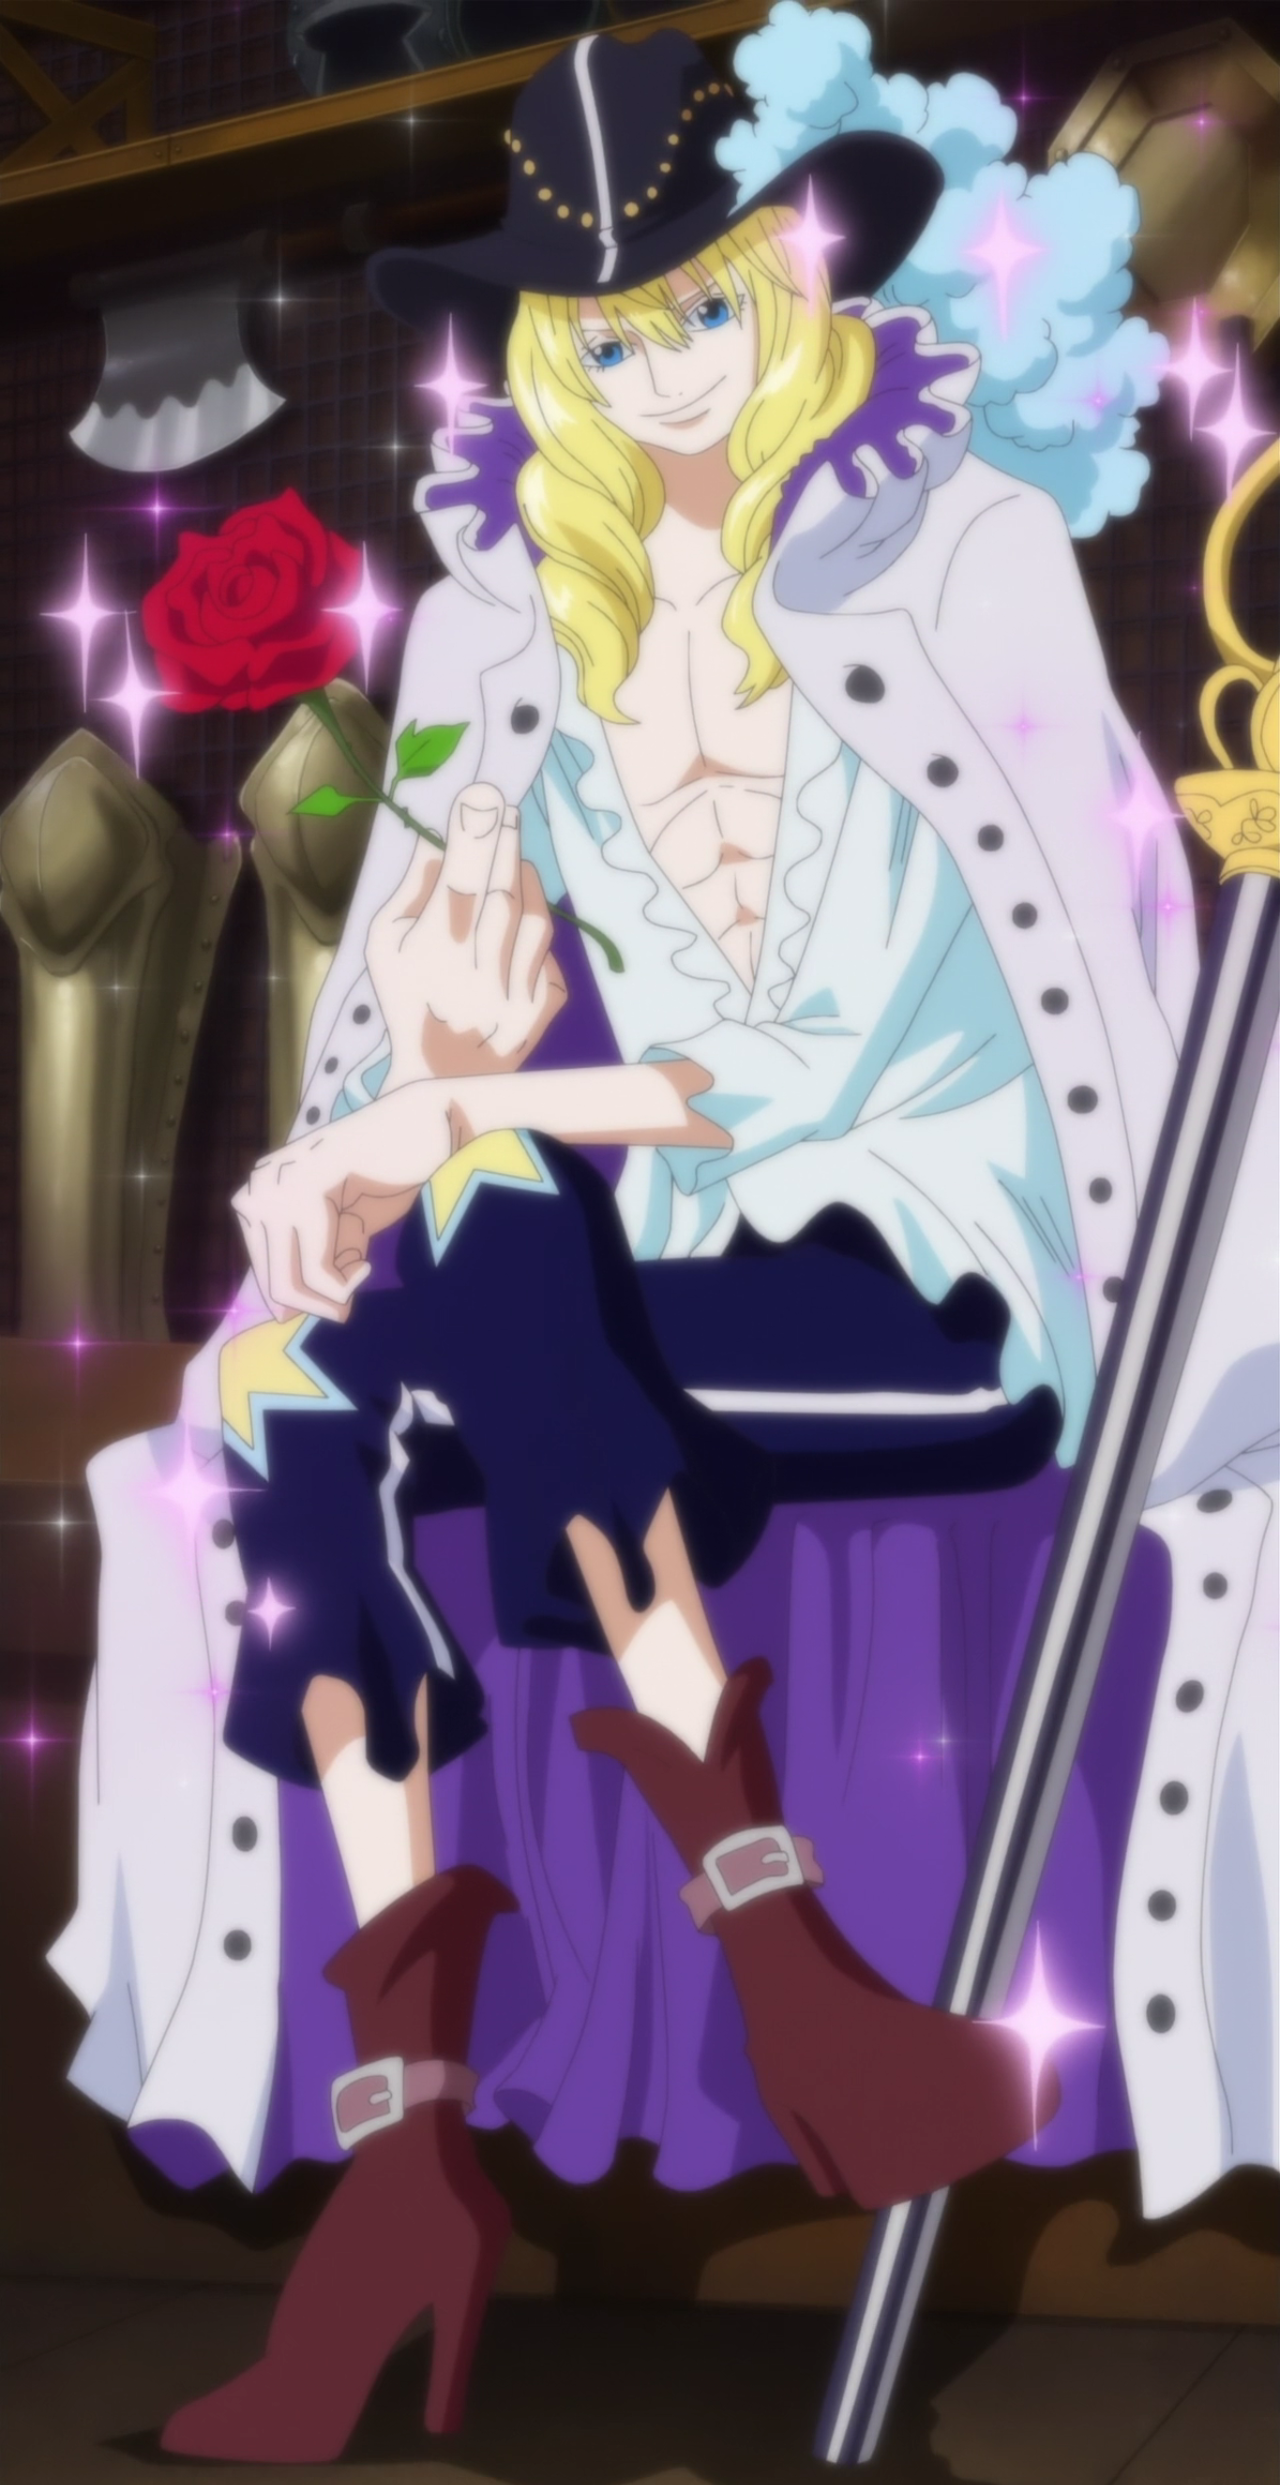 Cavendish | One Piece Wiki | FANDOM powered by Wikia